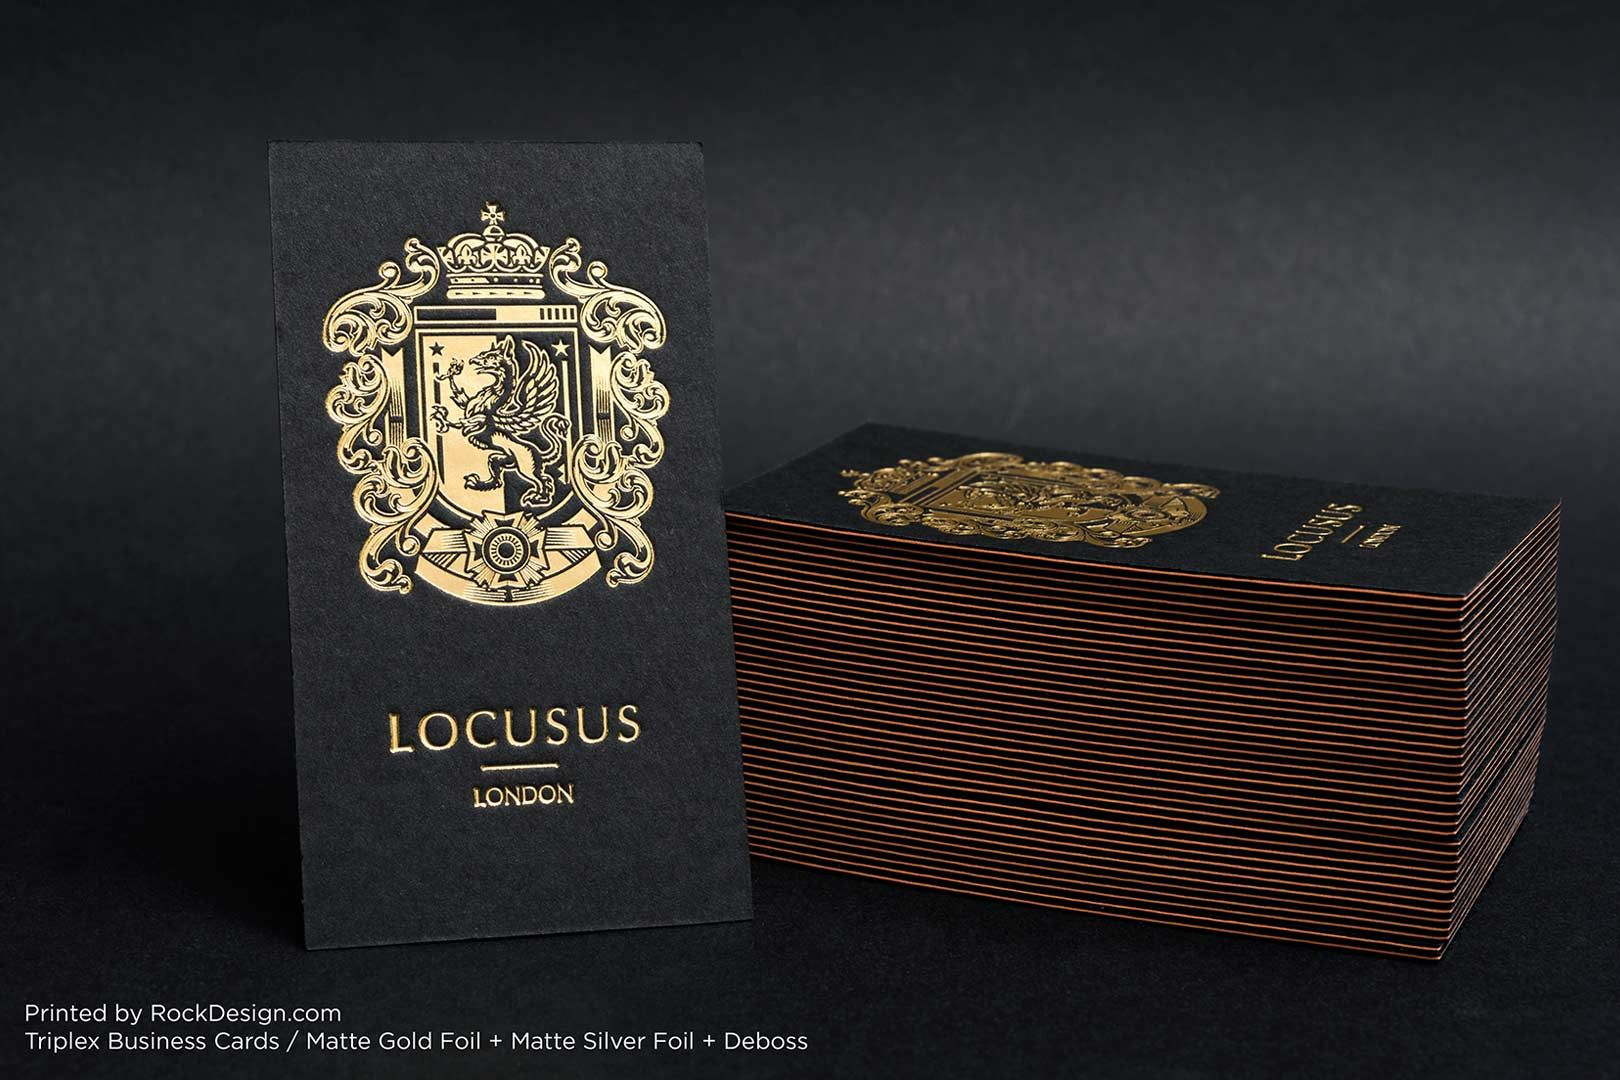 Triplex Business Cards | RockDesign Luxury Business Card Printing ...